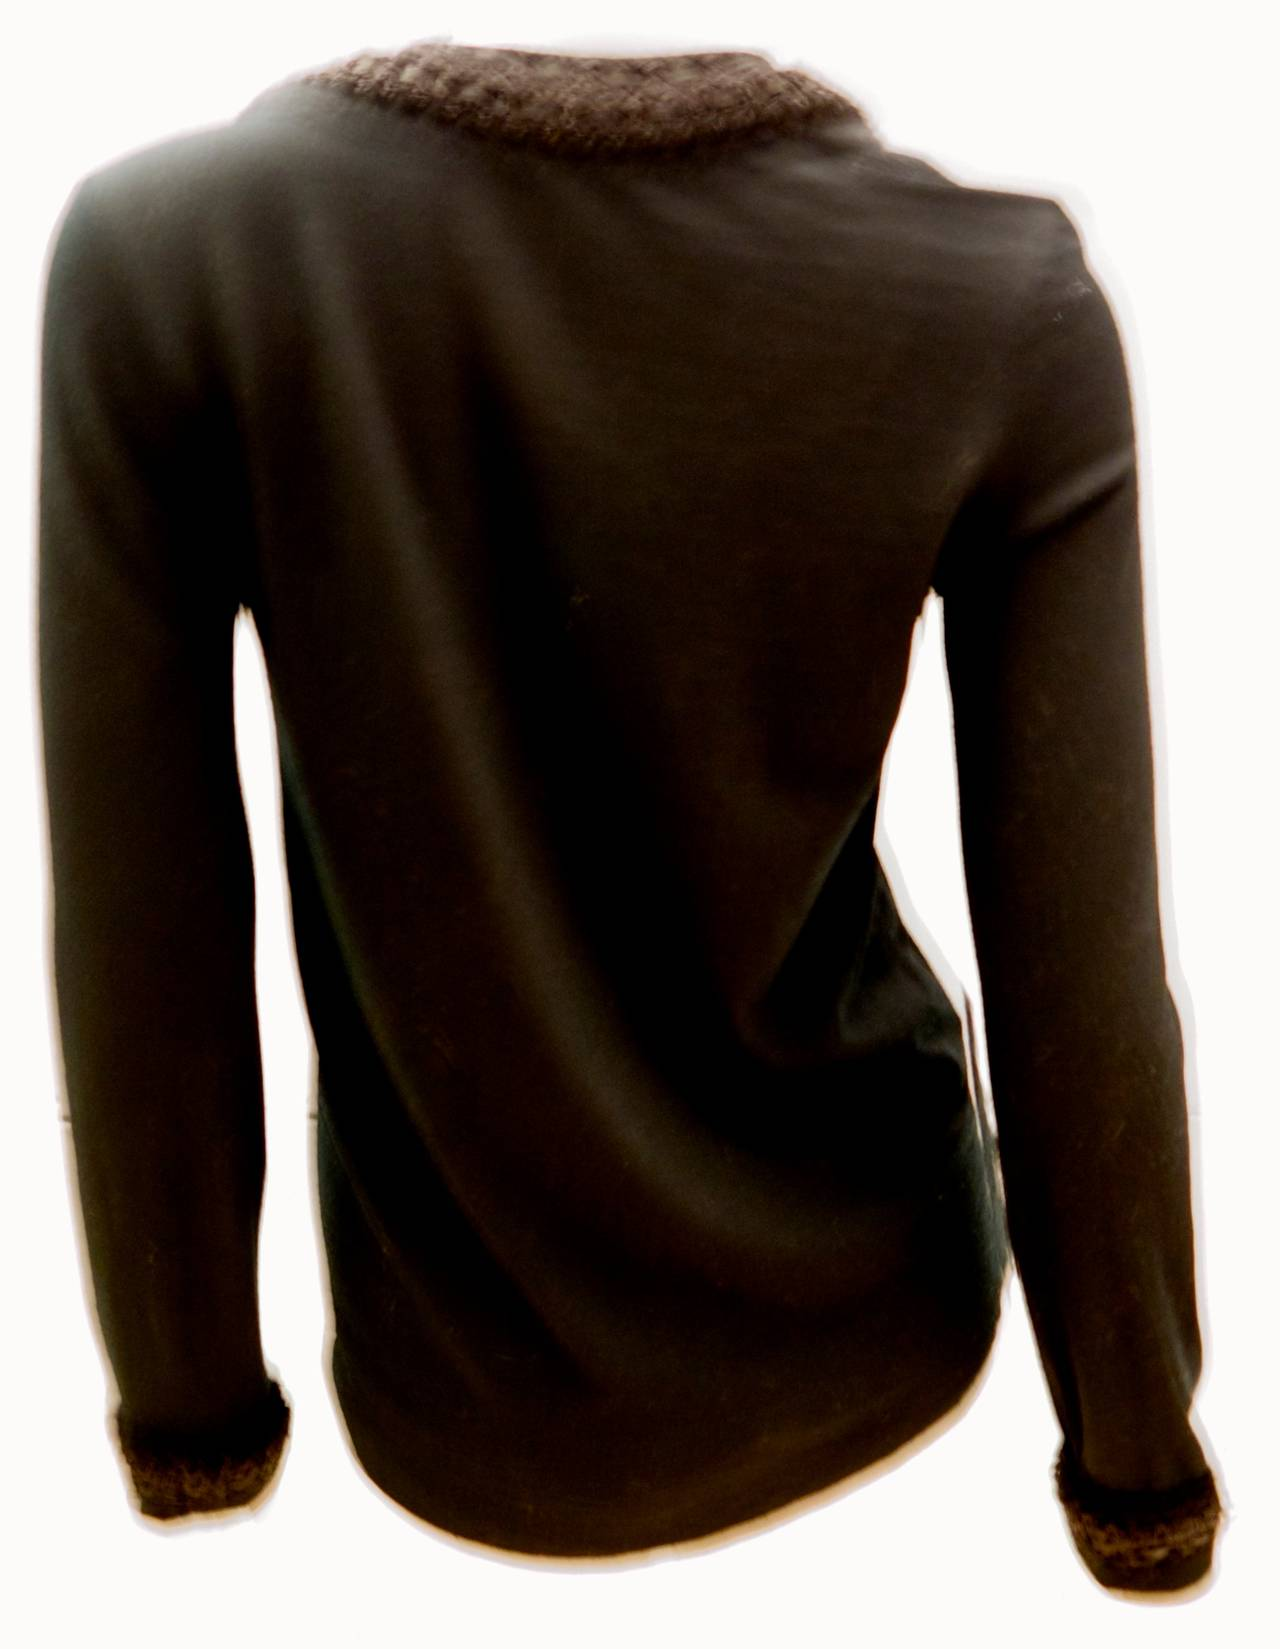 Chanel black shirt. The collar is a very intricately woven design comprised of lambskin and nylon. The collar of this shirt makes this shirt is a simple yet elegant masterpiece of fashion by Chanel. There is a small CC emblem below the color on the